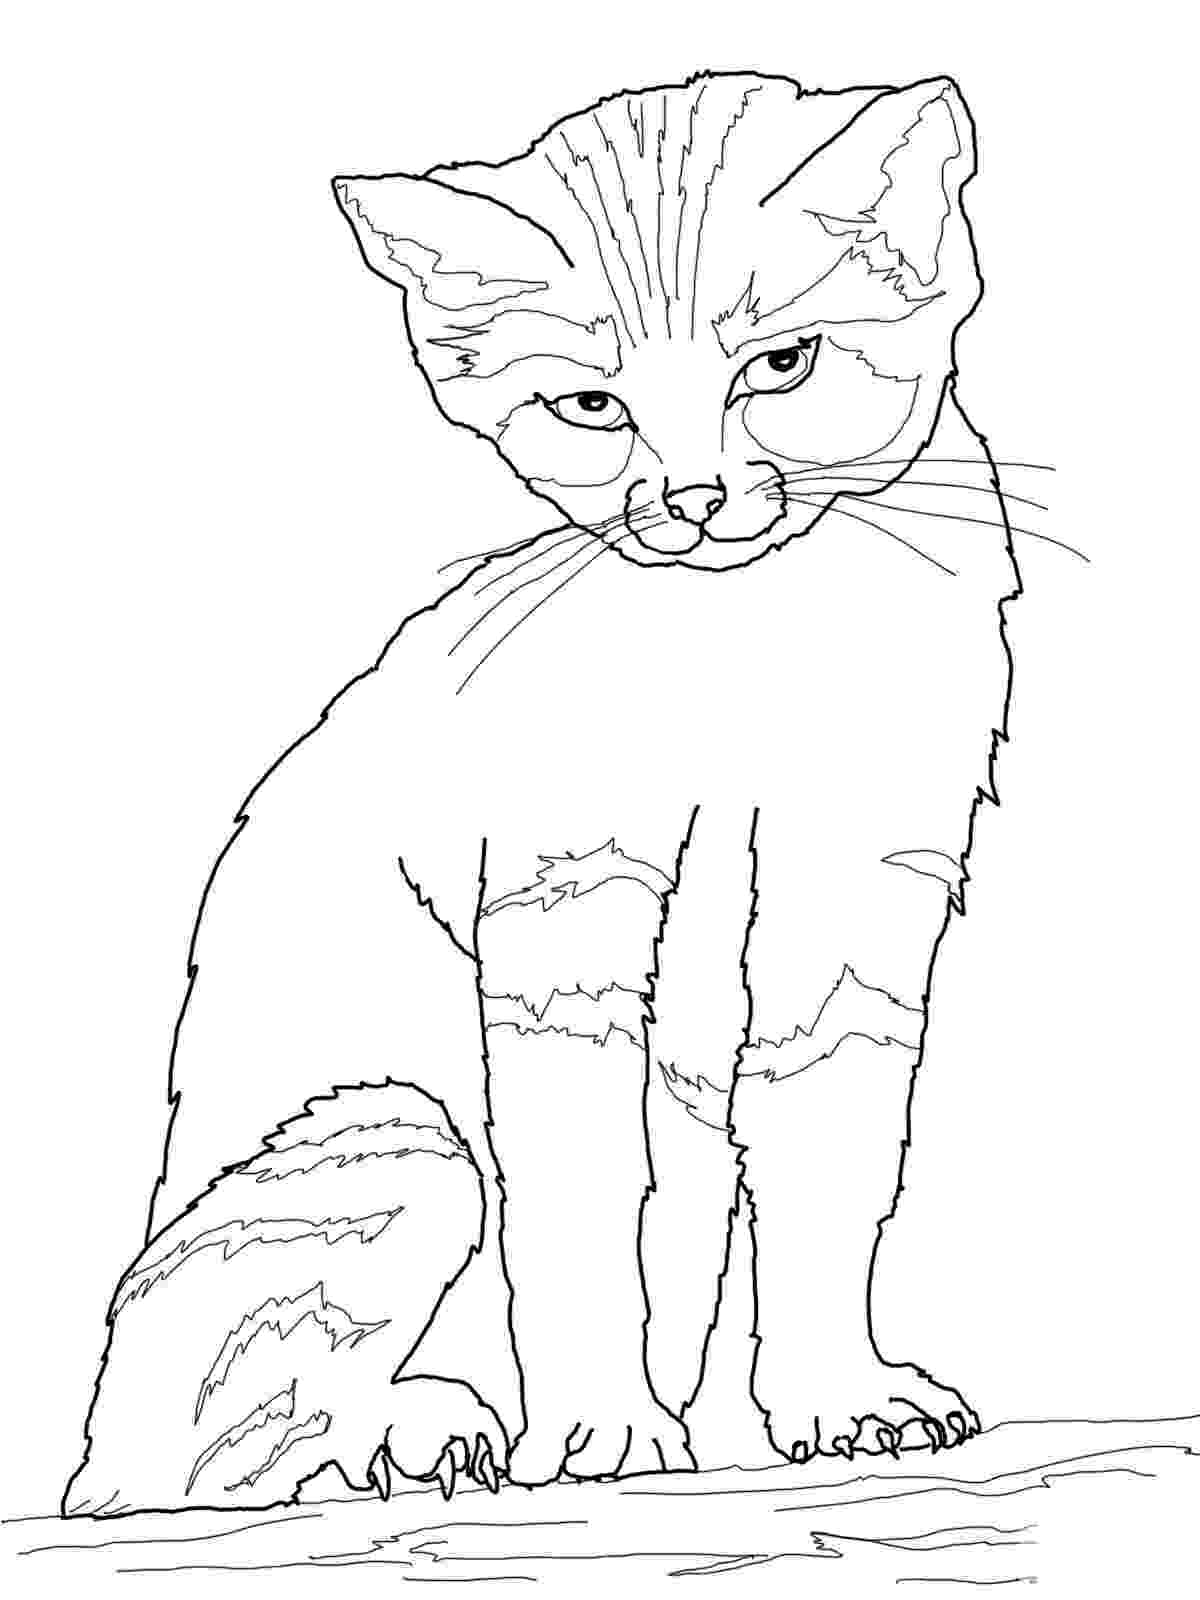 printable cat pictures to color free printable cat pictures free download on clipartmag color cat to pictures printable